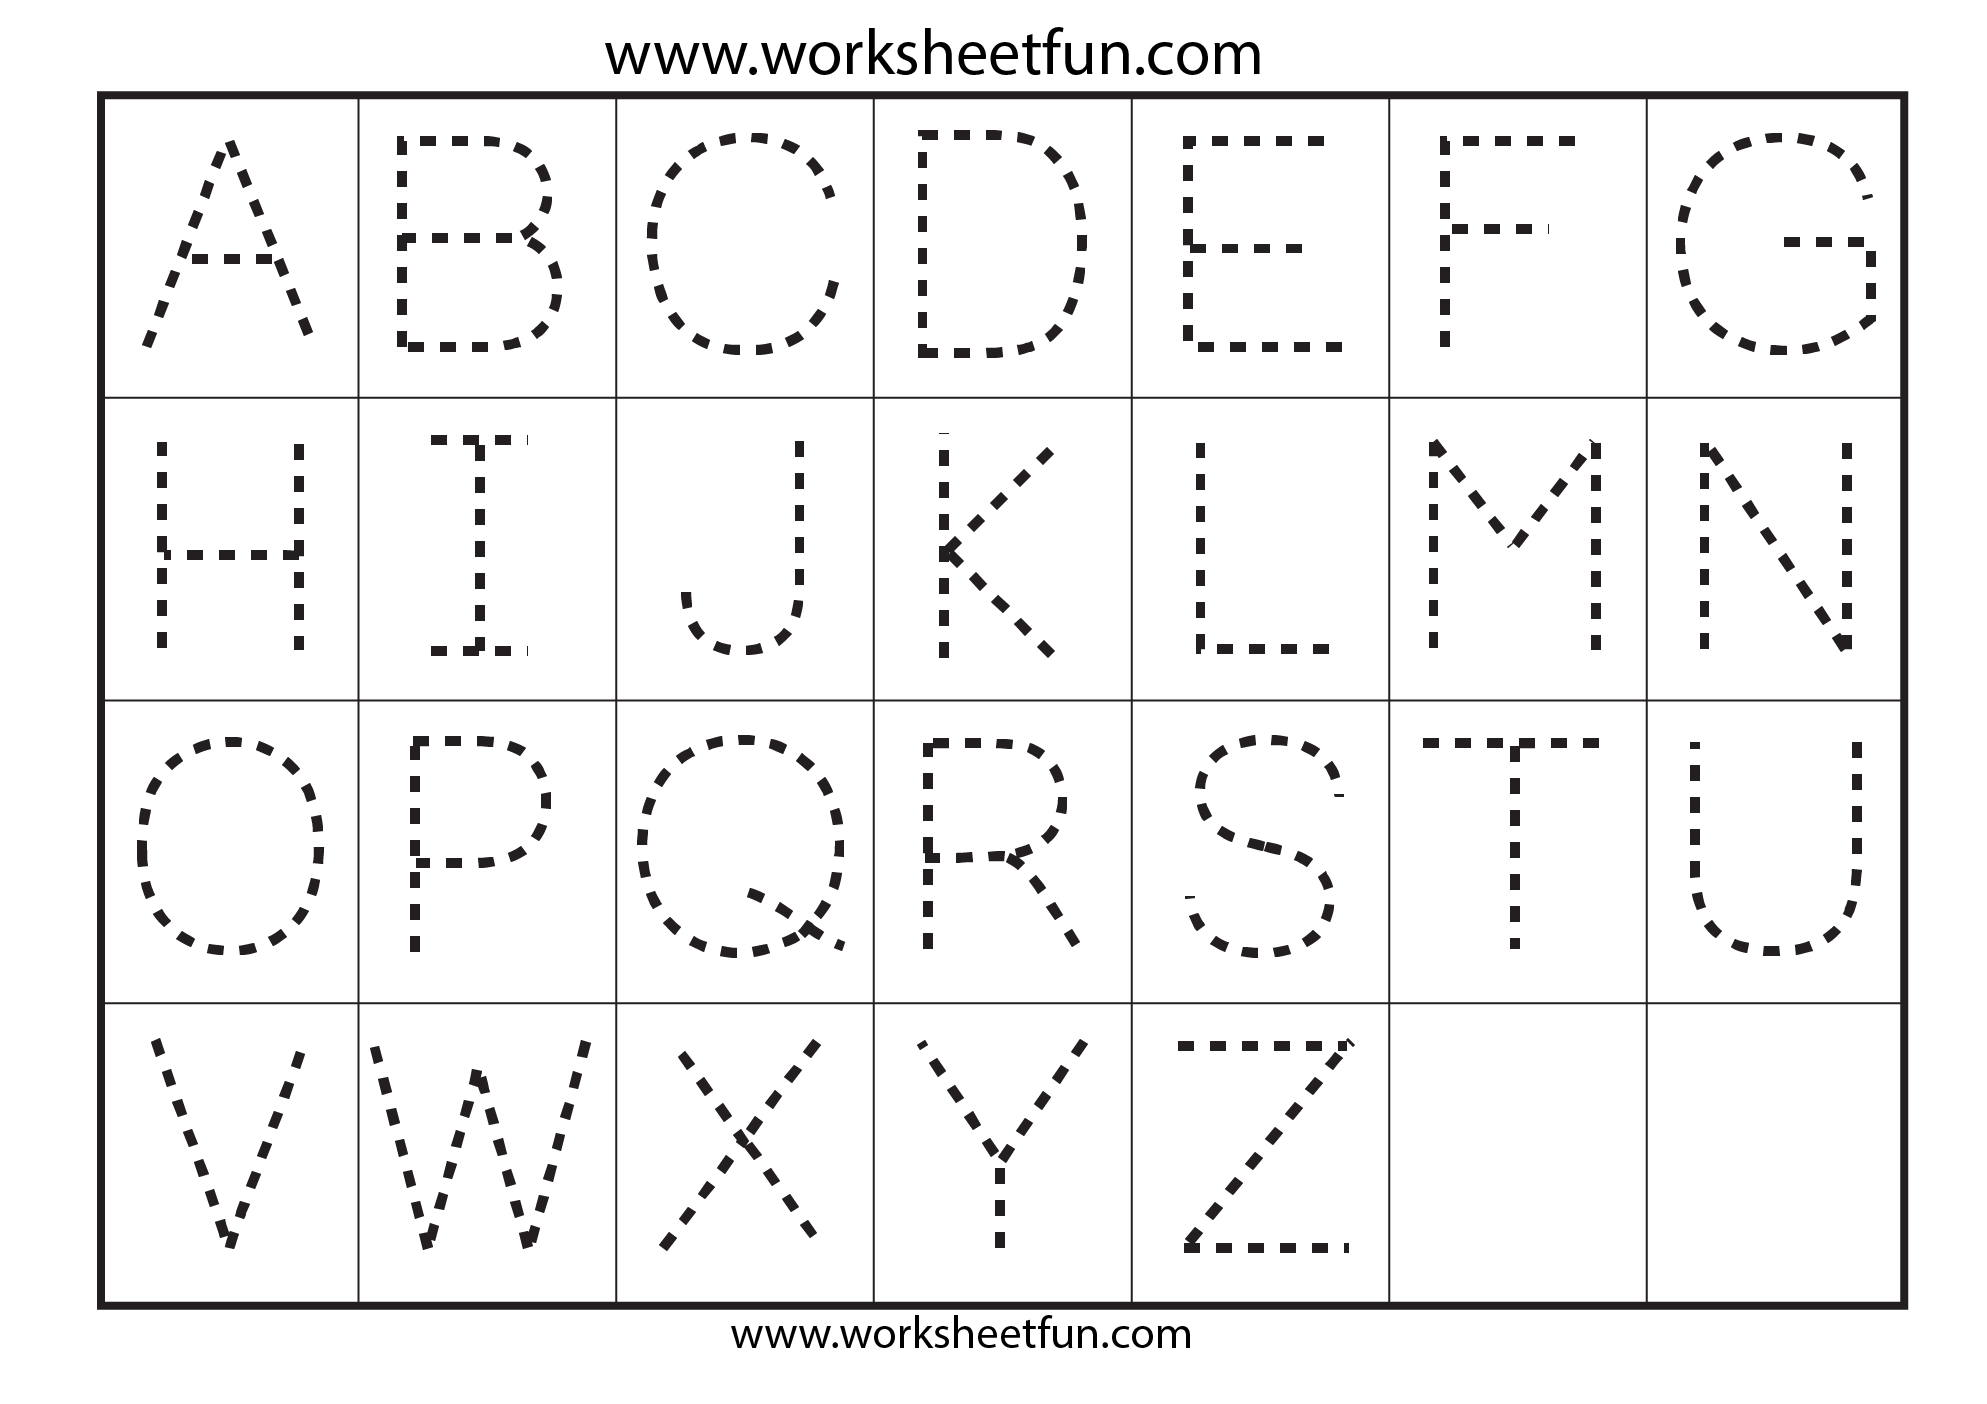 Worksheet Trace Letters trace letters worksheets imperialdesignstudio worksheets